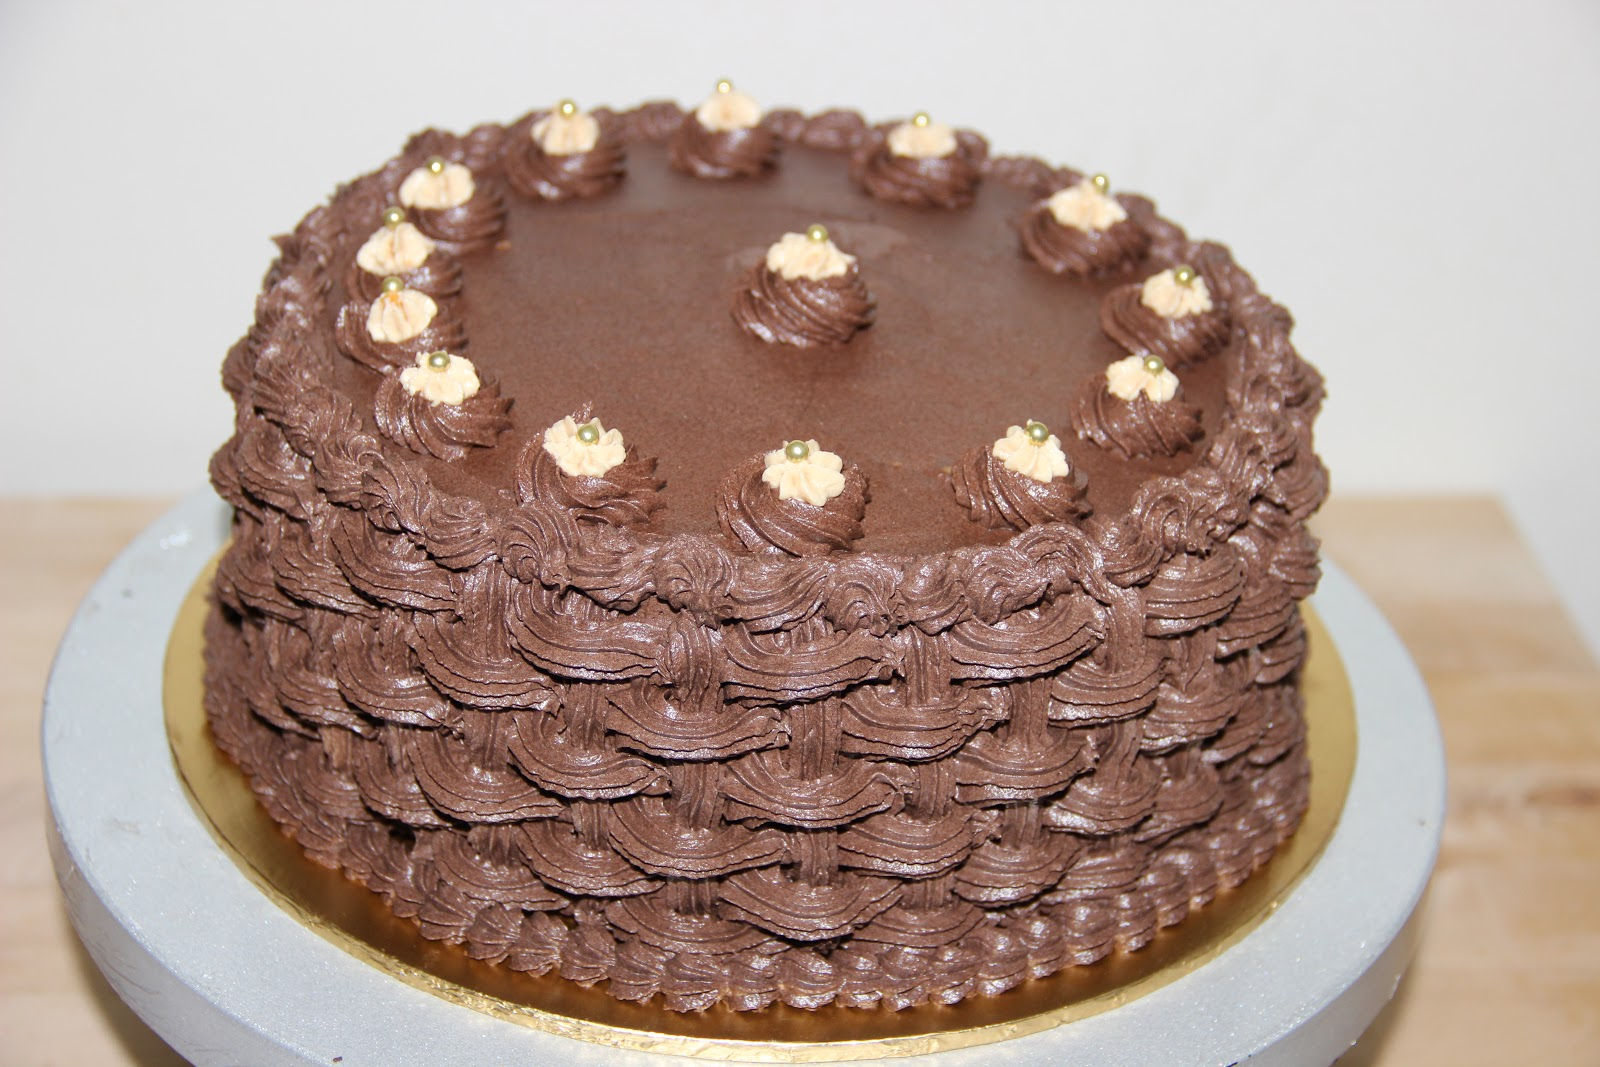 ... chocolate & peanut butter put together to form a soft, moist & light